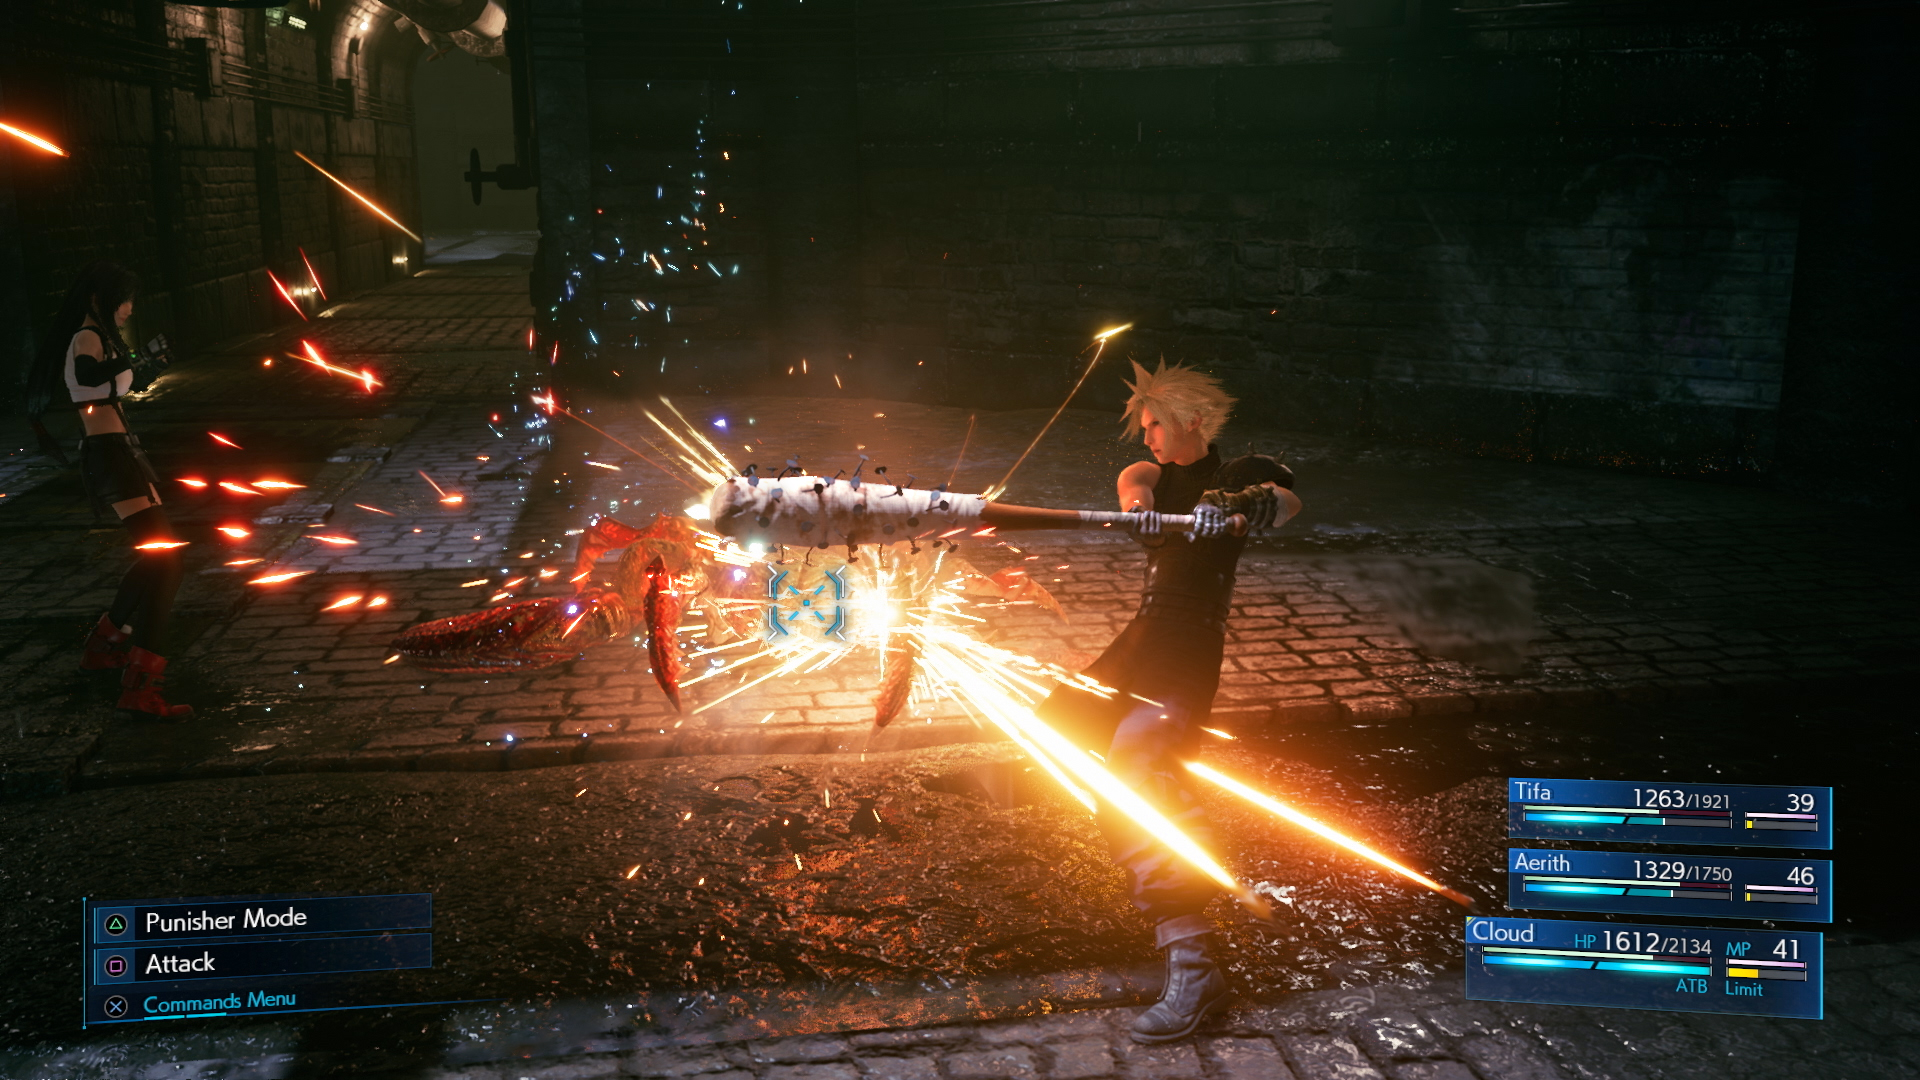 Cloud in Final Fantasy VII Remake using a different weapon